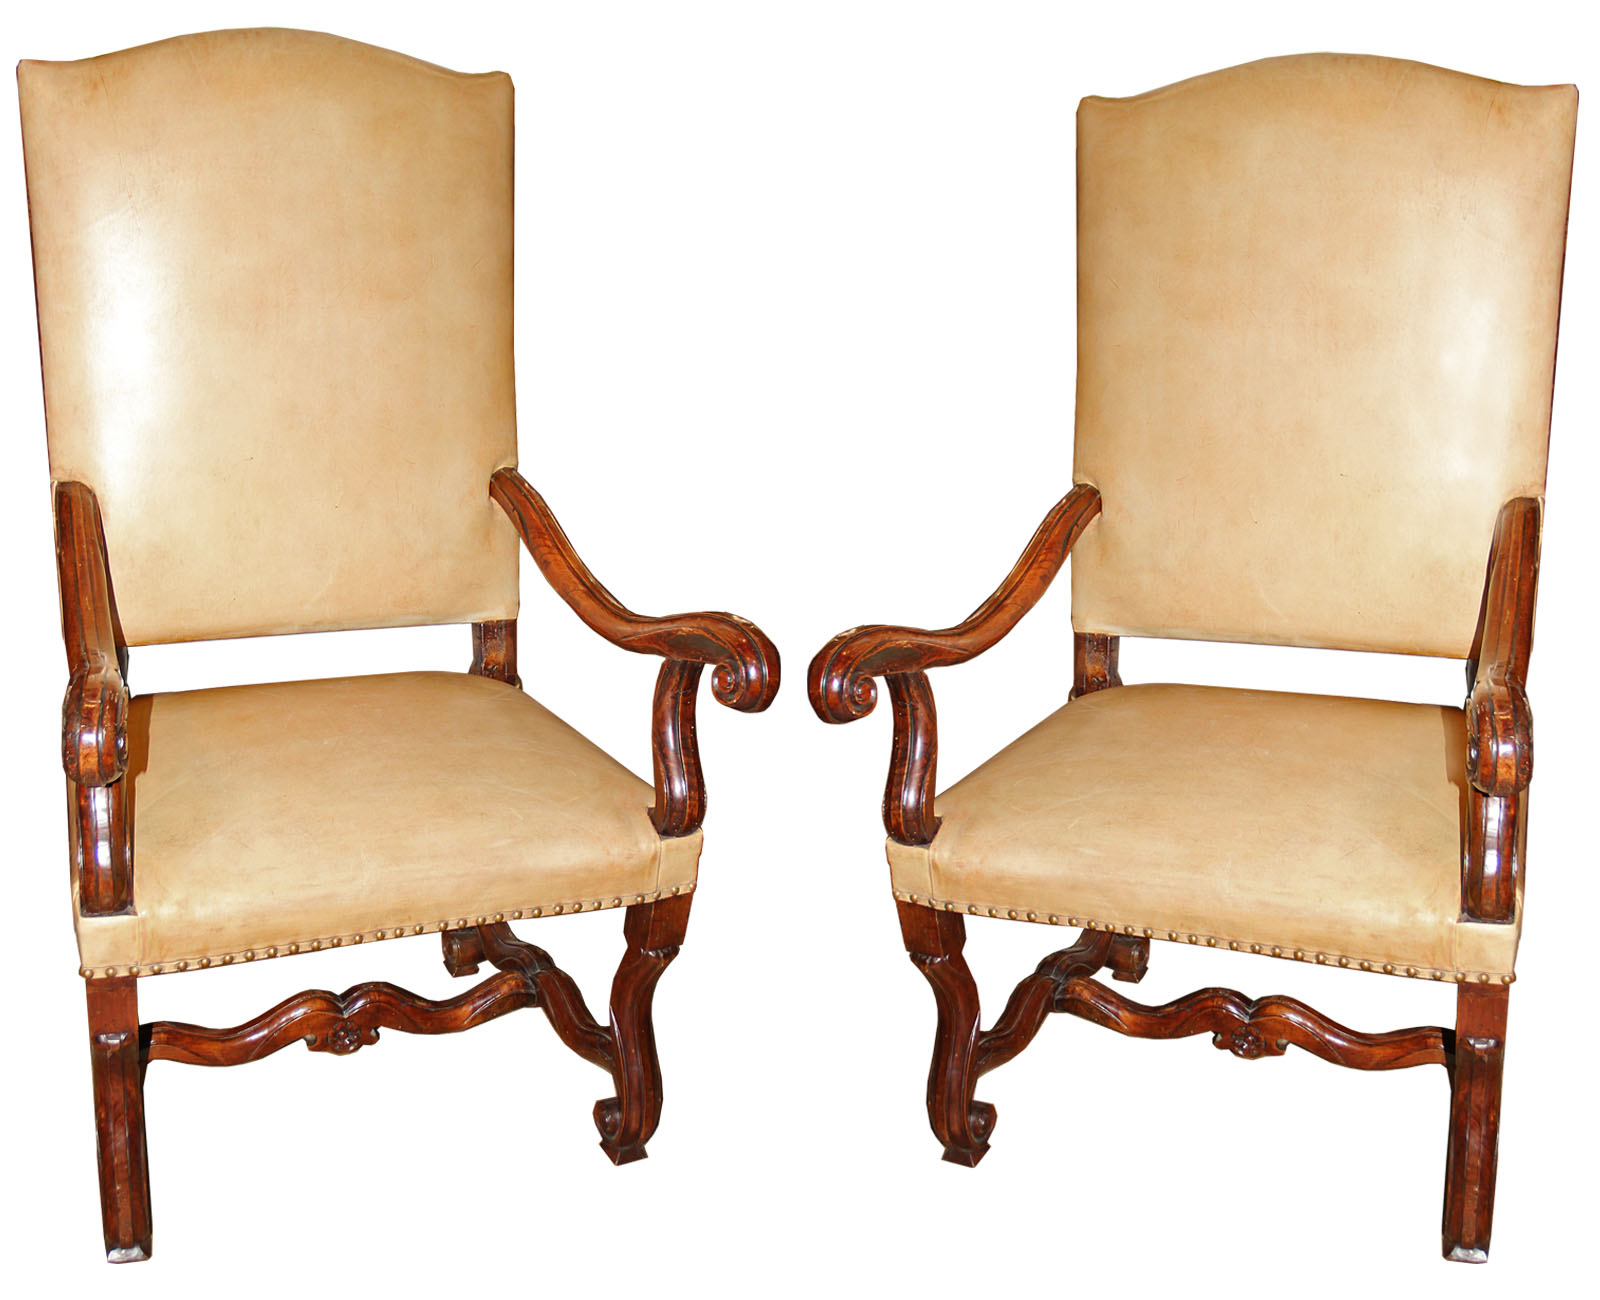 A Pair of 18th Century Italian Louis XIV Walnut Fauteuils No. 4525